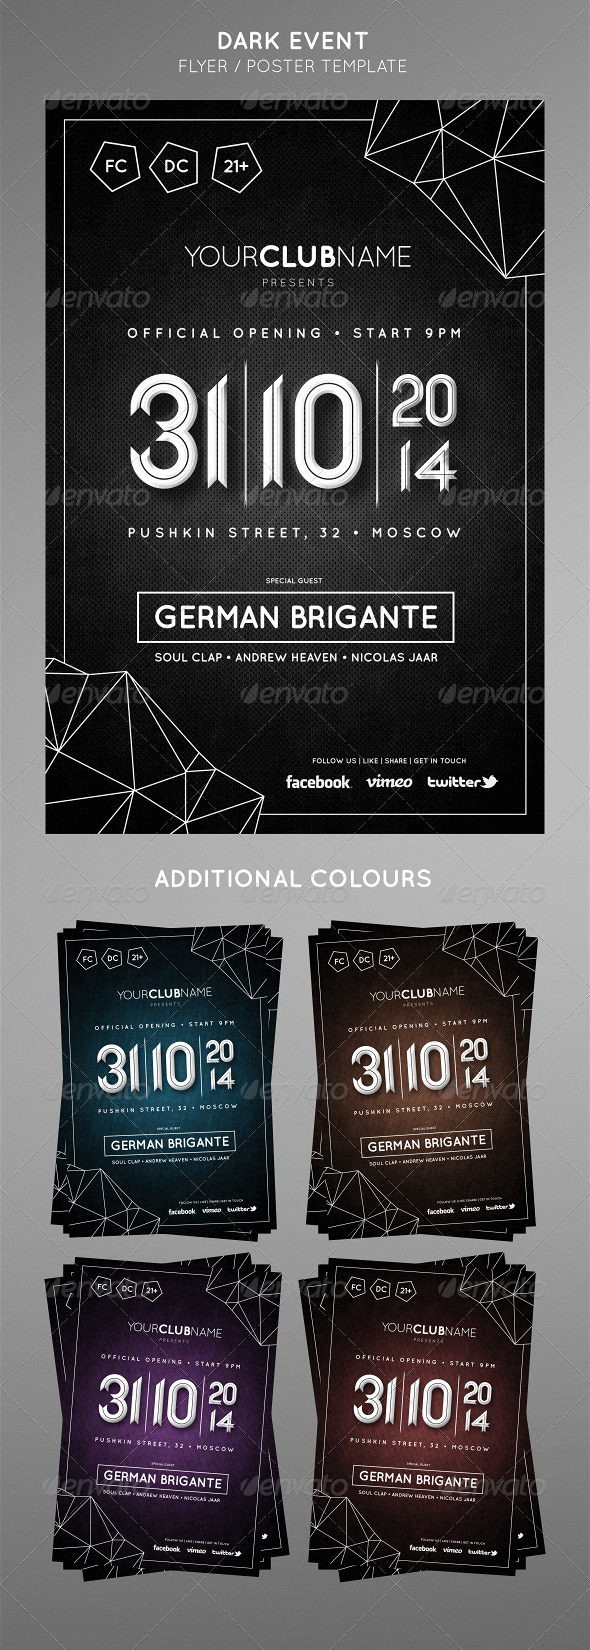 GraphicRiver DARK EVENT Flyer 6962388